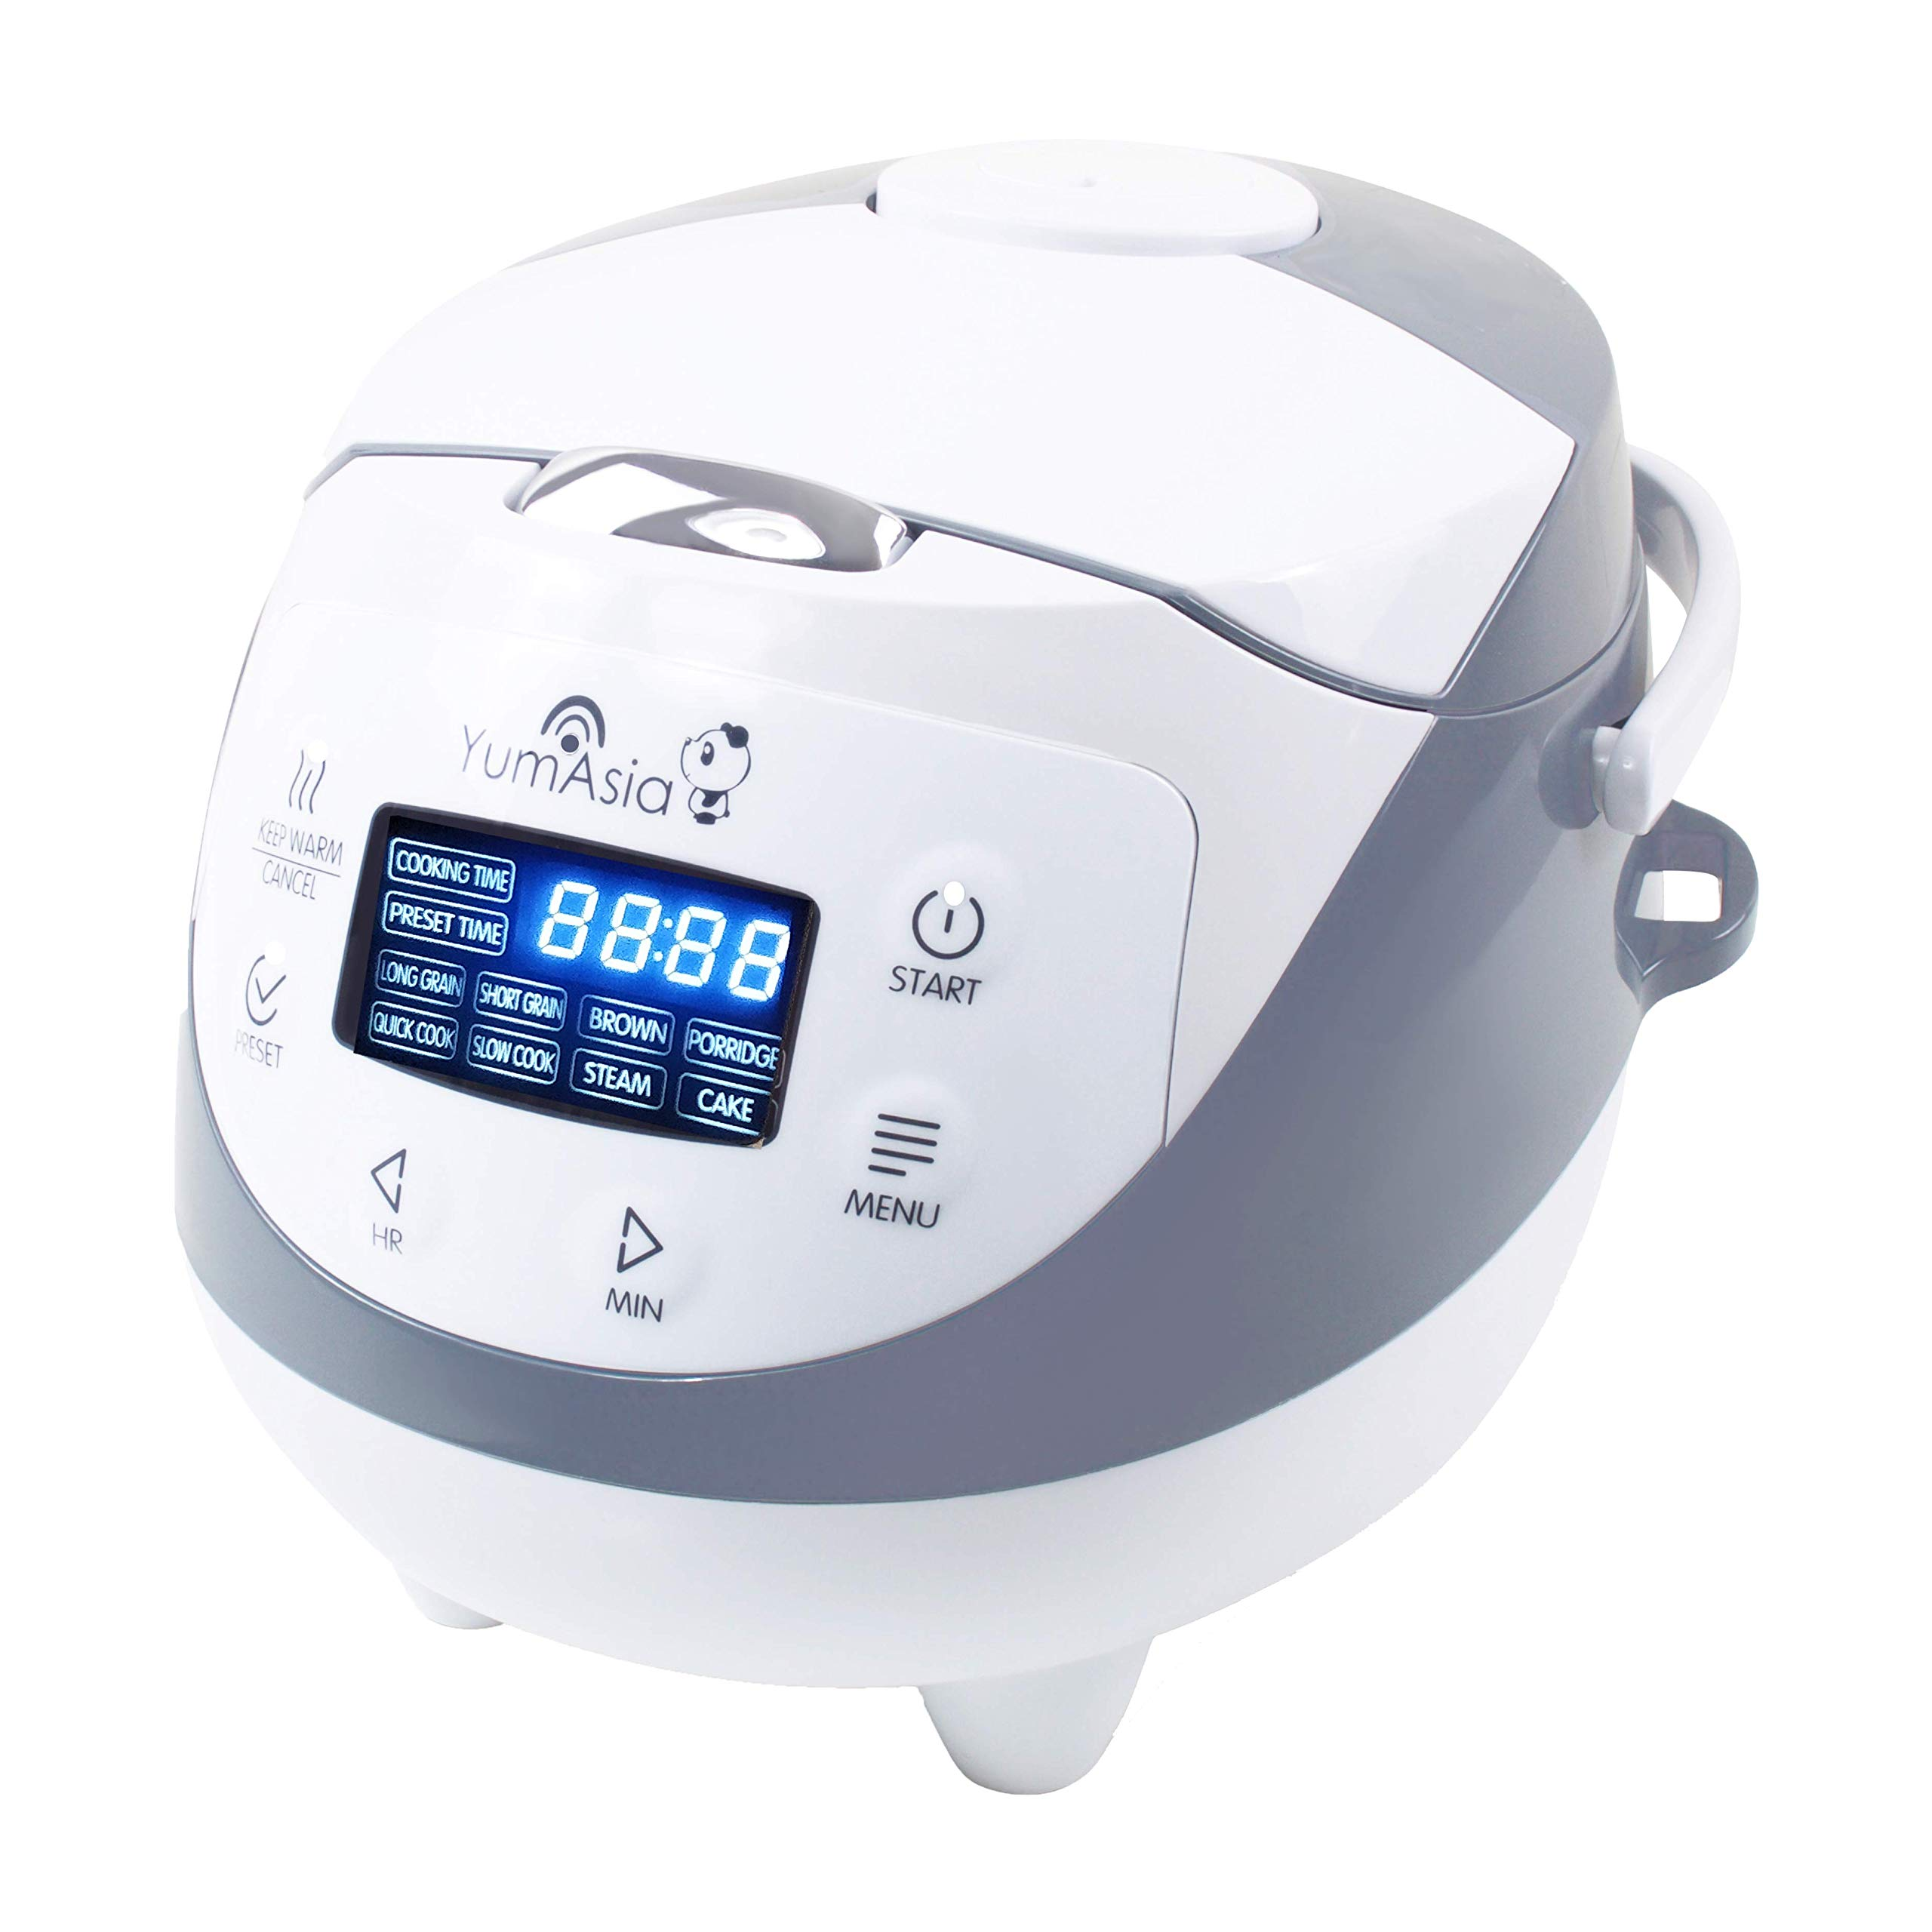 Yum Asia Panda Mini Rice Cooker with Ninja Ceramic Bowl and Advanced Fuzzy Logic (3.5 Cup, 0.63 Litre) 4 Rice Cooking Functions, 4 Multicooker Functions, Motouch LED Display, 220-240V